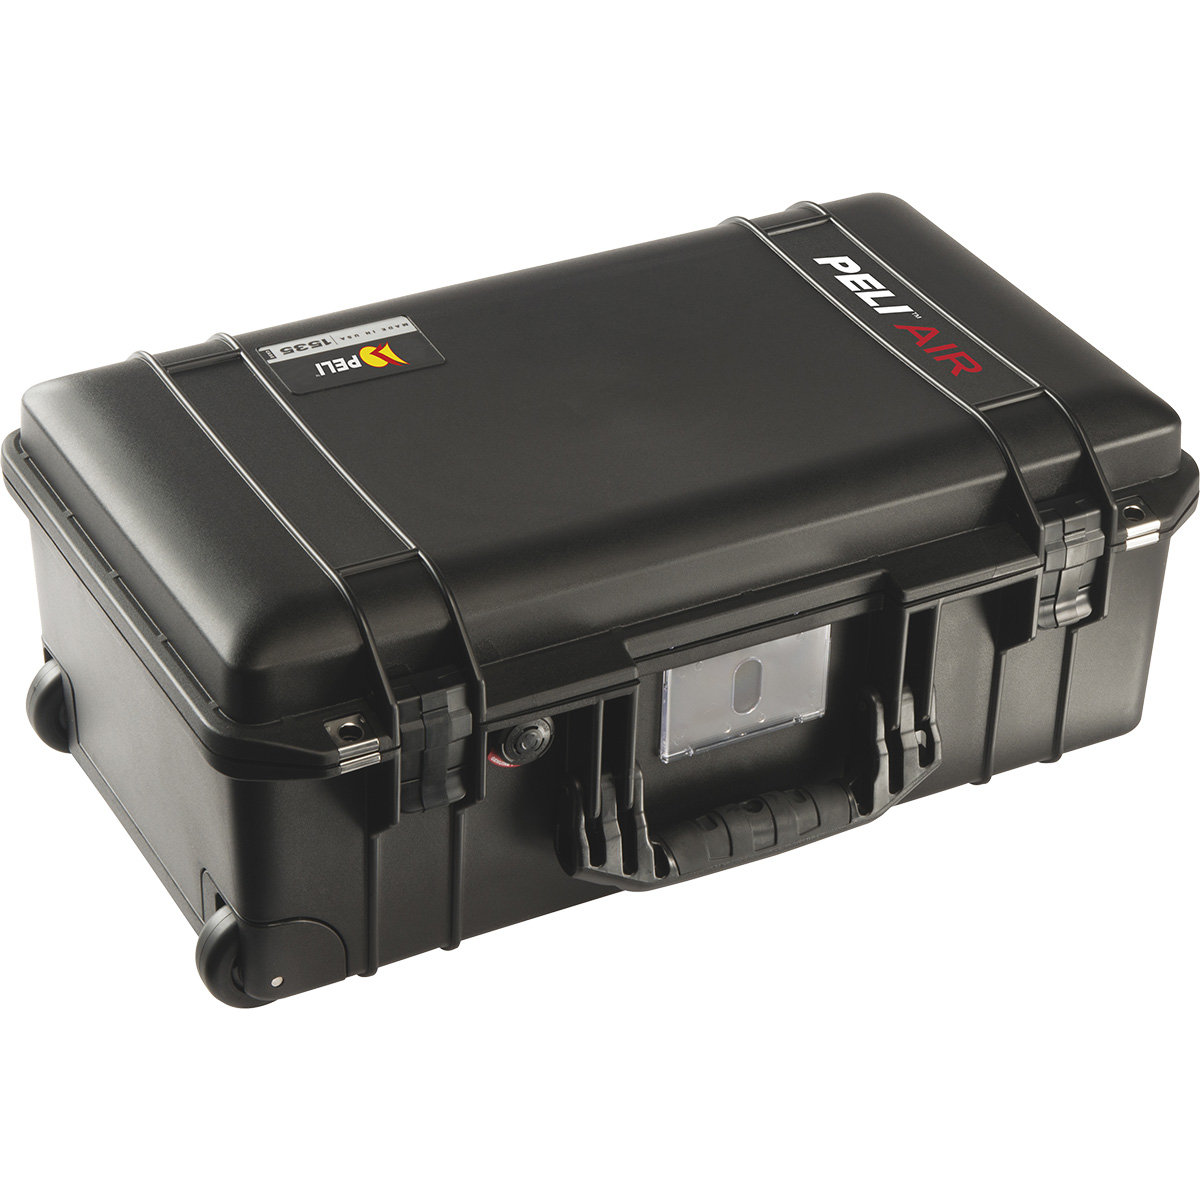 Peli™️ air 1535 super light black case with trekpak